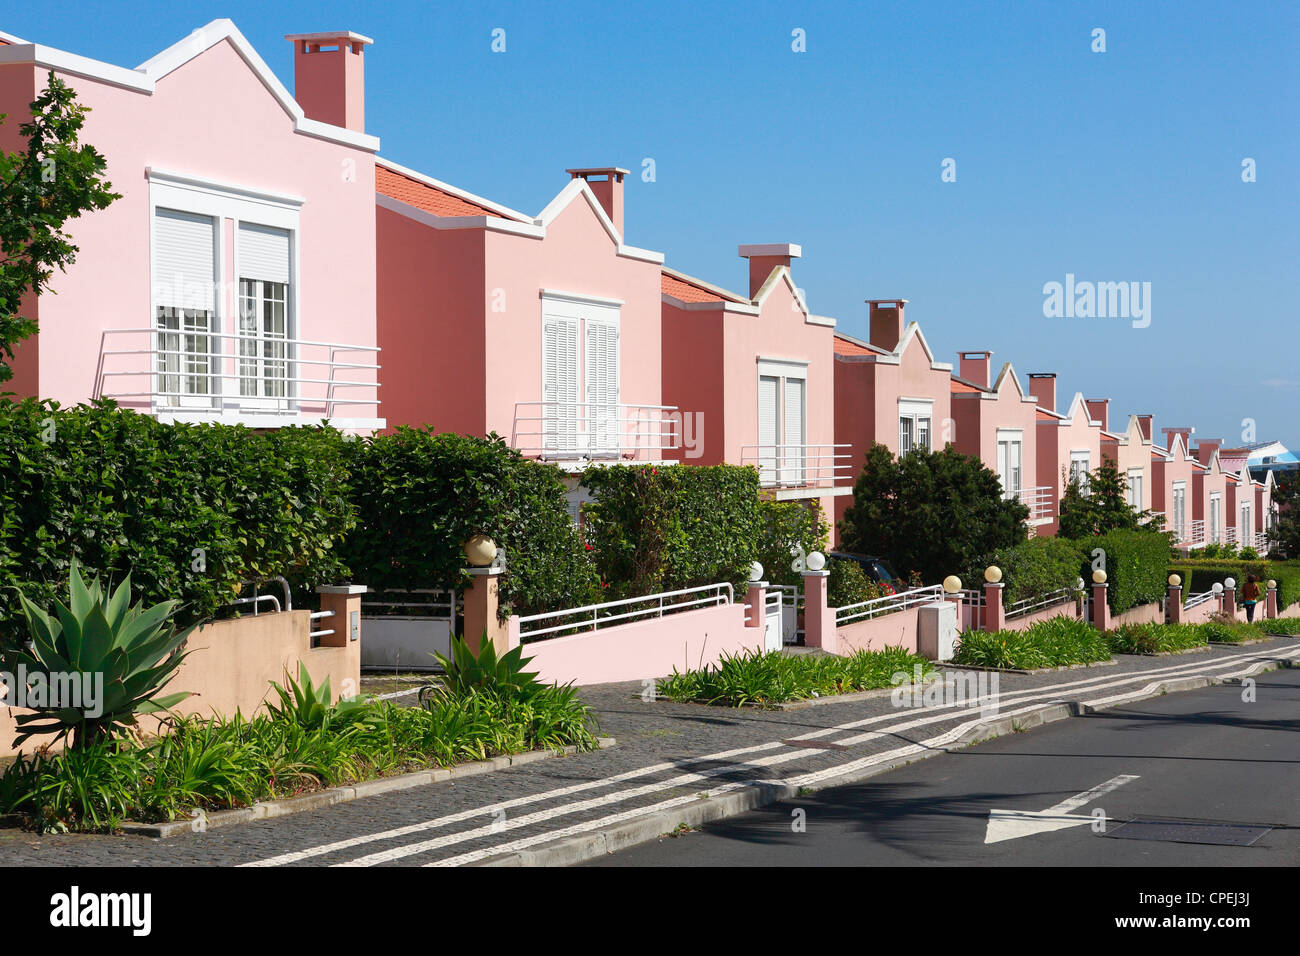 Residential neighborhood - Stock Image